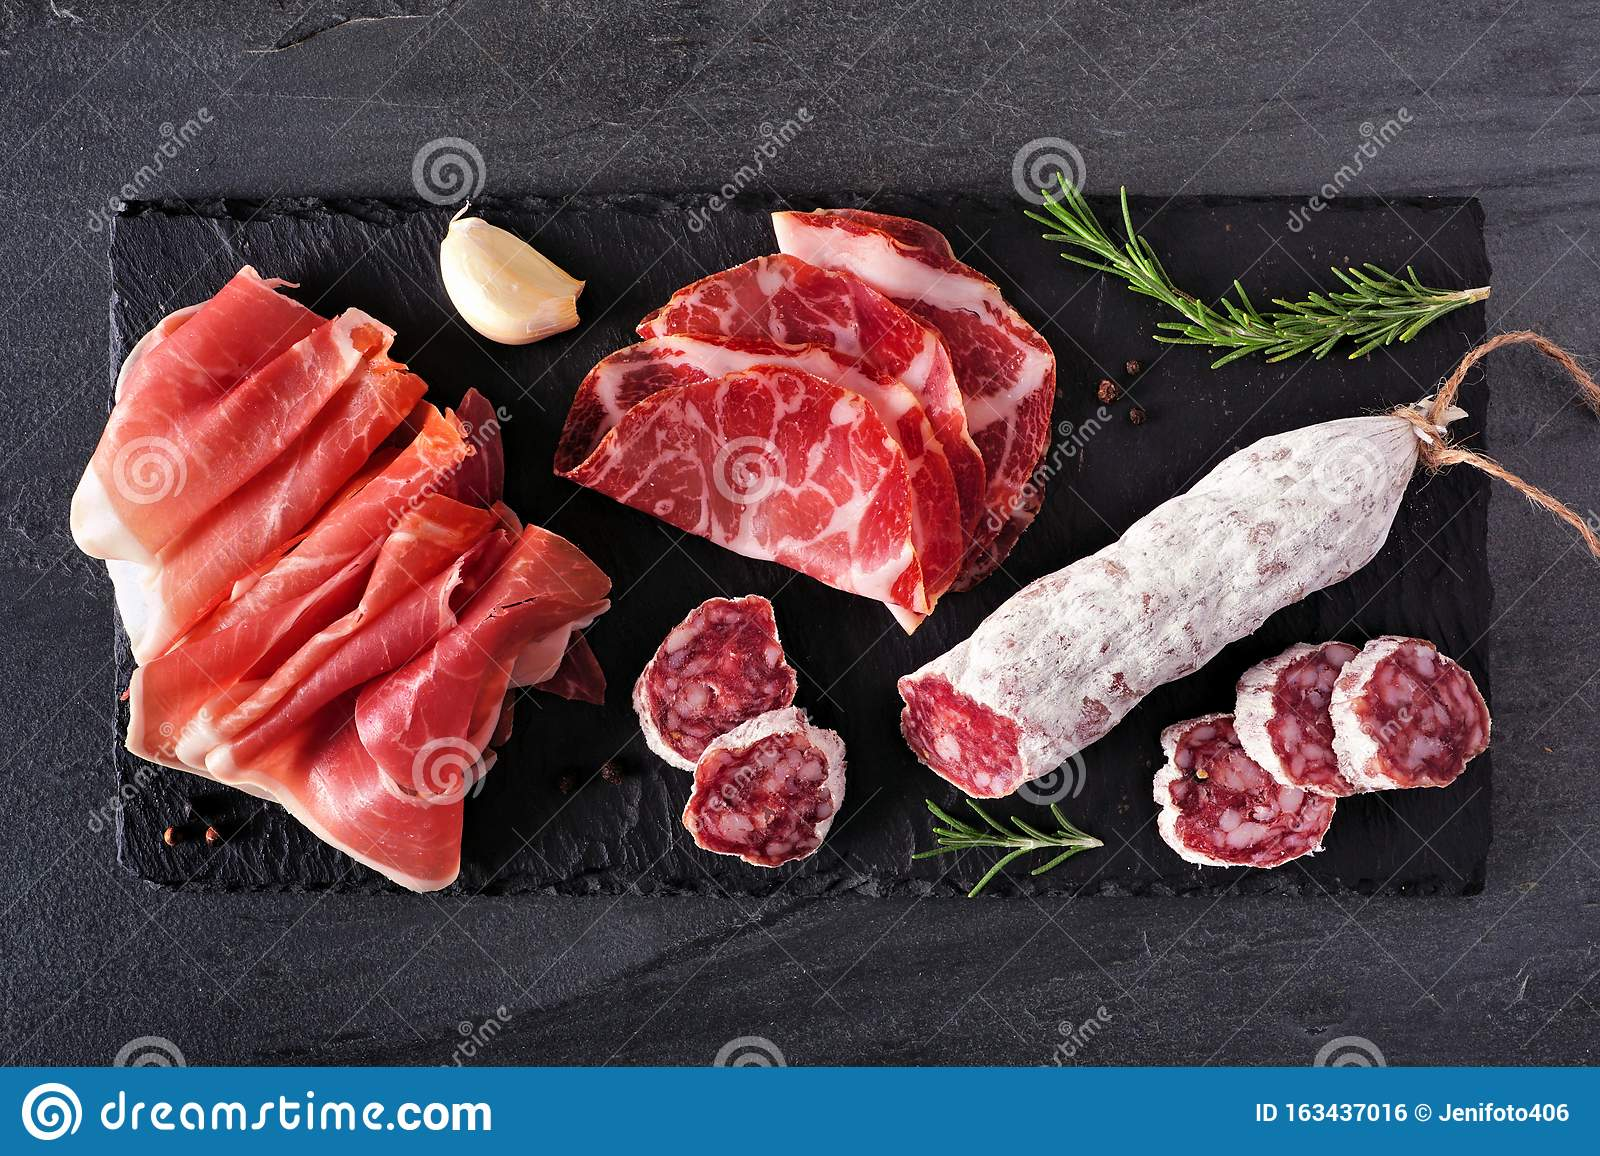 Meat appetizer platter with sausage, and cold cuts, above view on a slate serving board